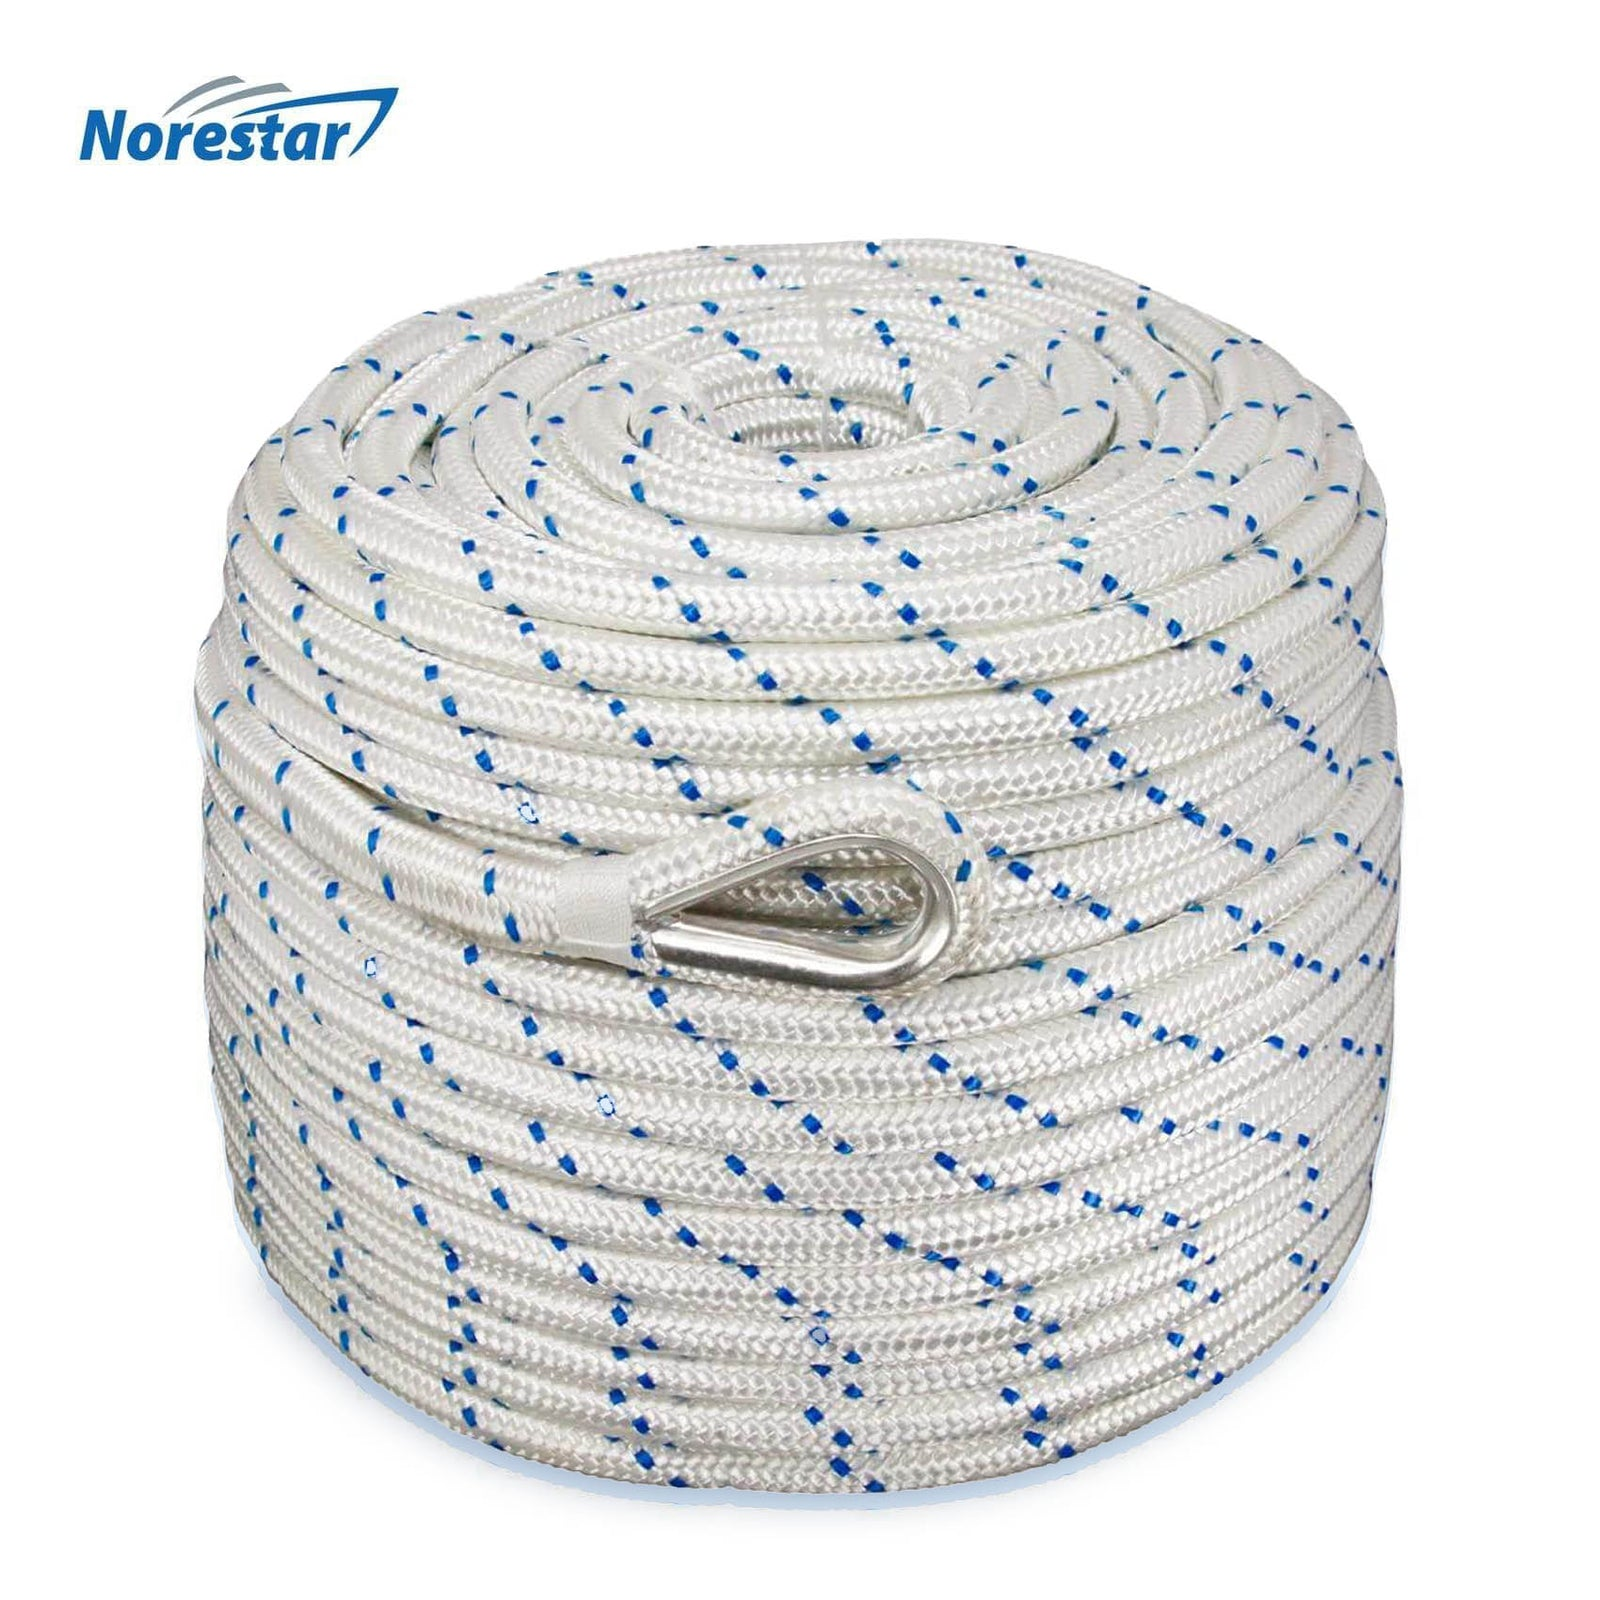 Norestar Double-Braided Nylon Anchor Rope - 1/2""